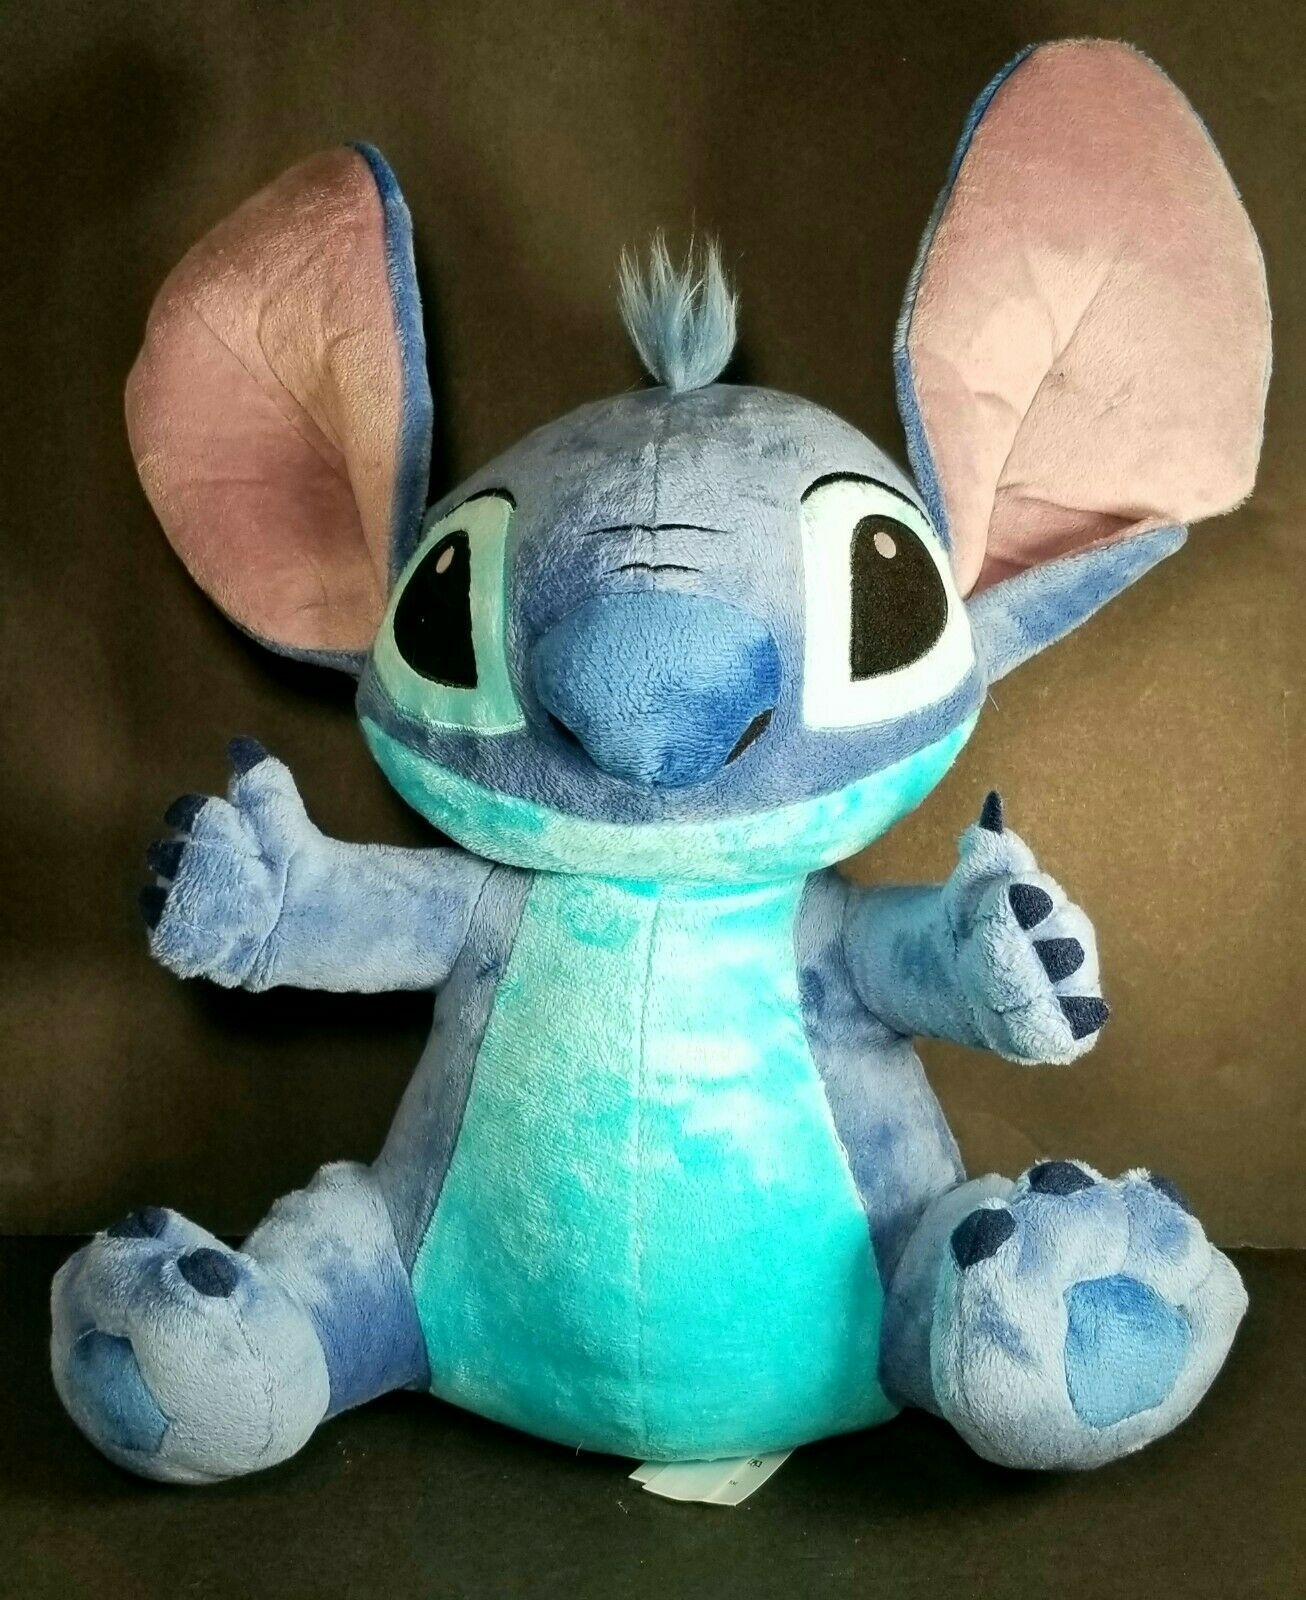 "Primary image for Large 16"" Disney Store Original Lilo & Stich Blue Stuffed Plush Character Toy"